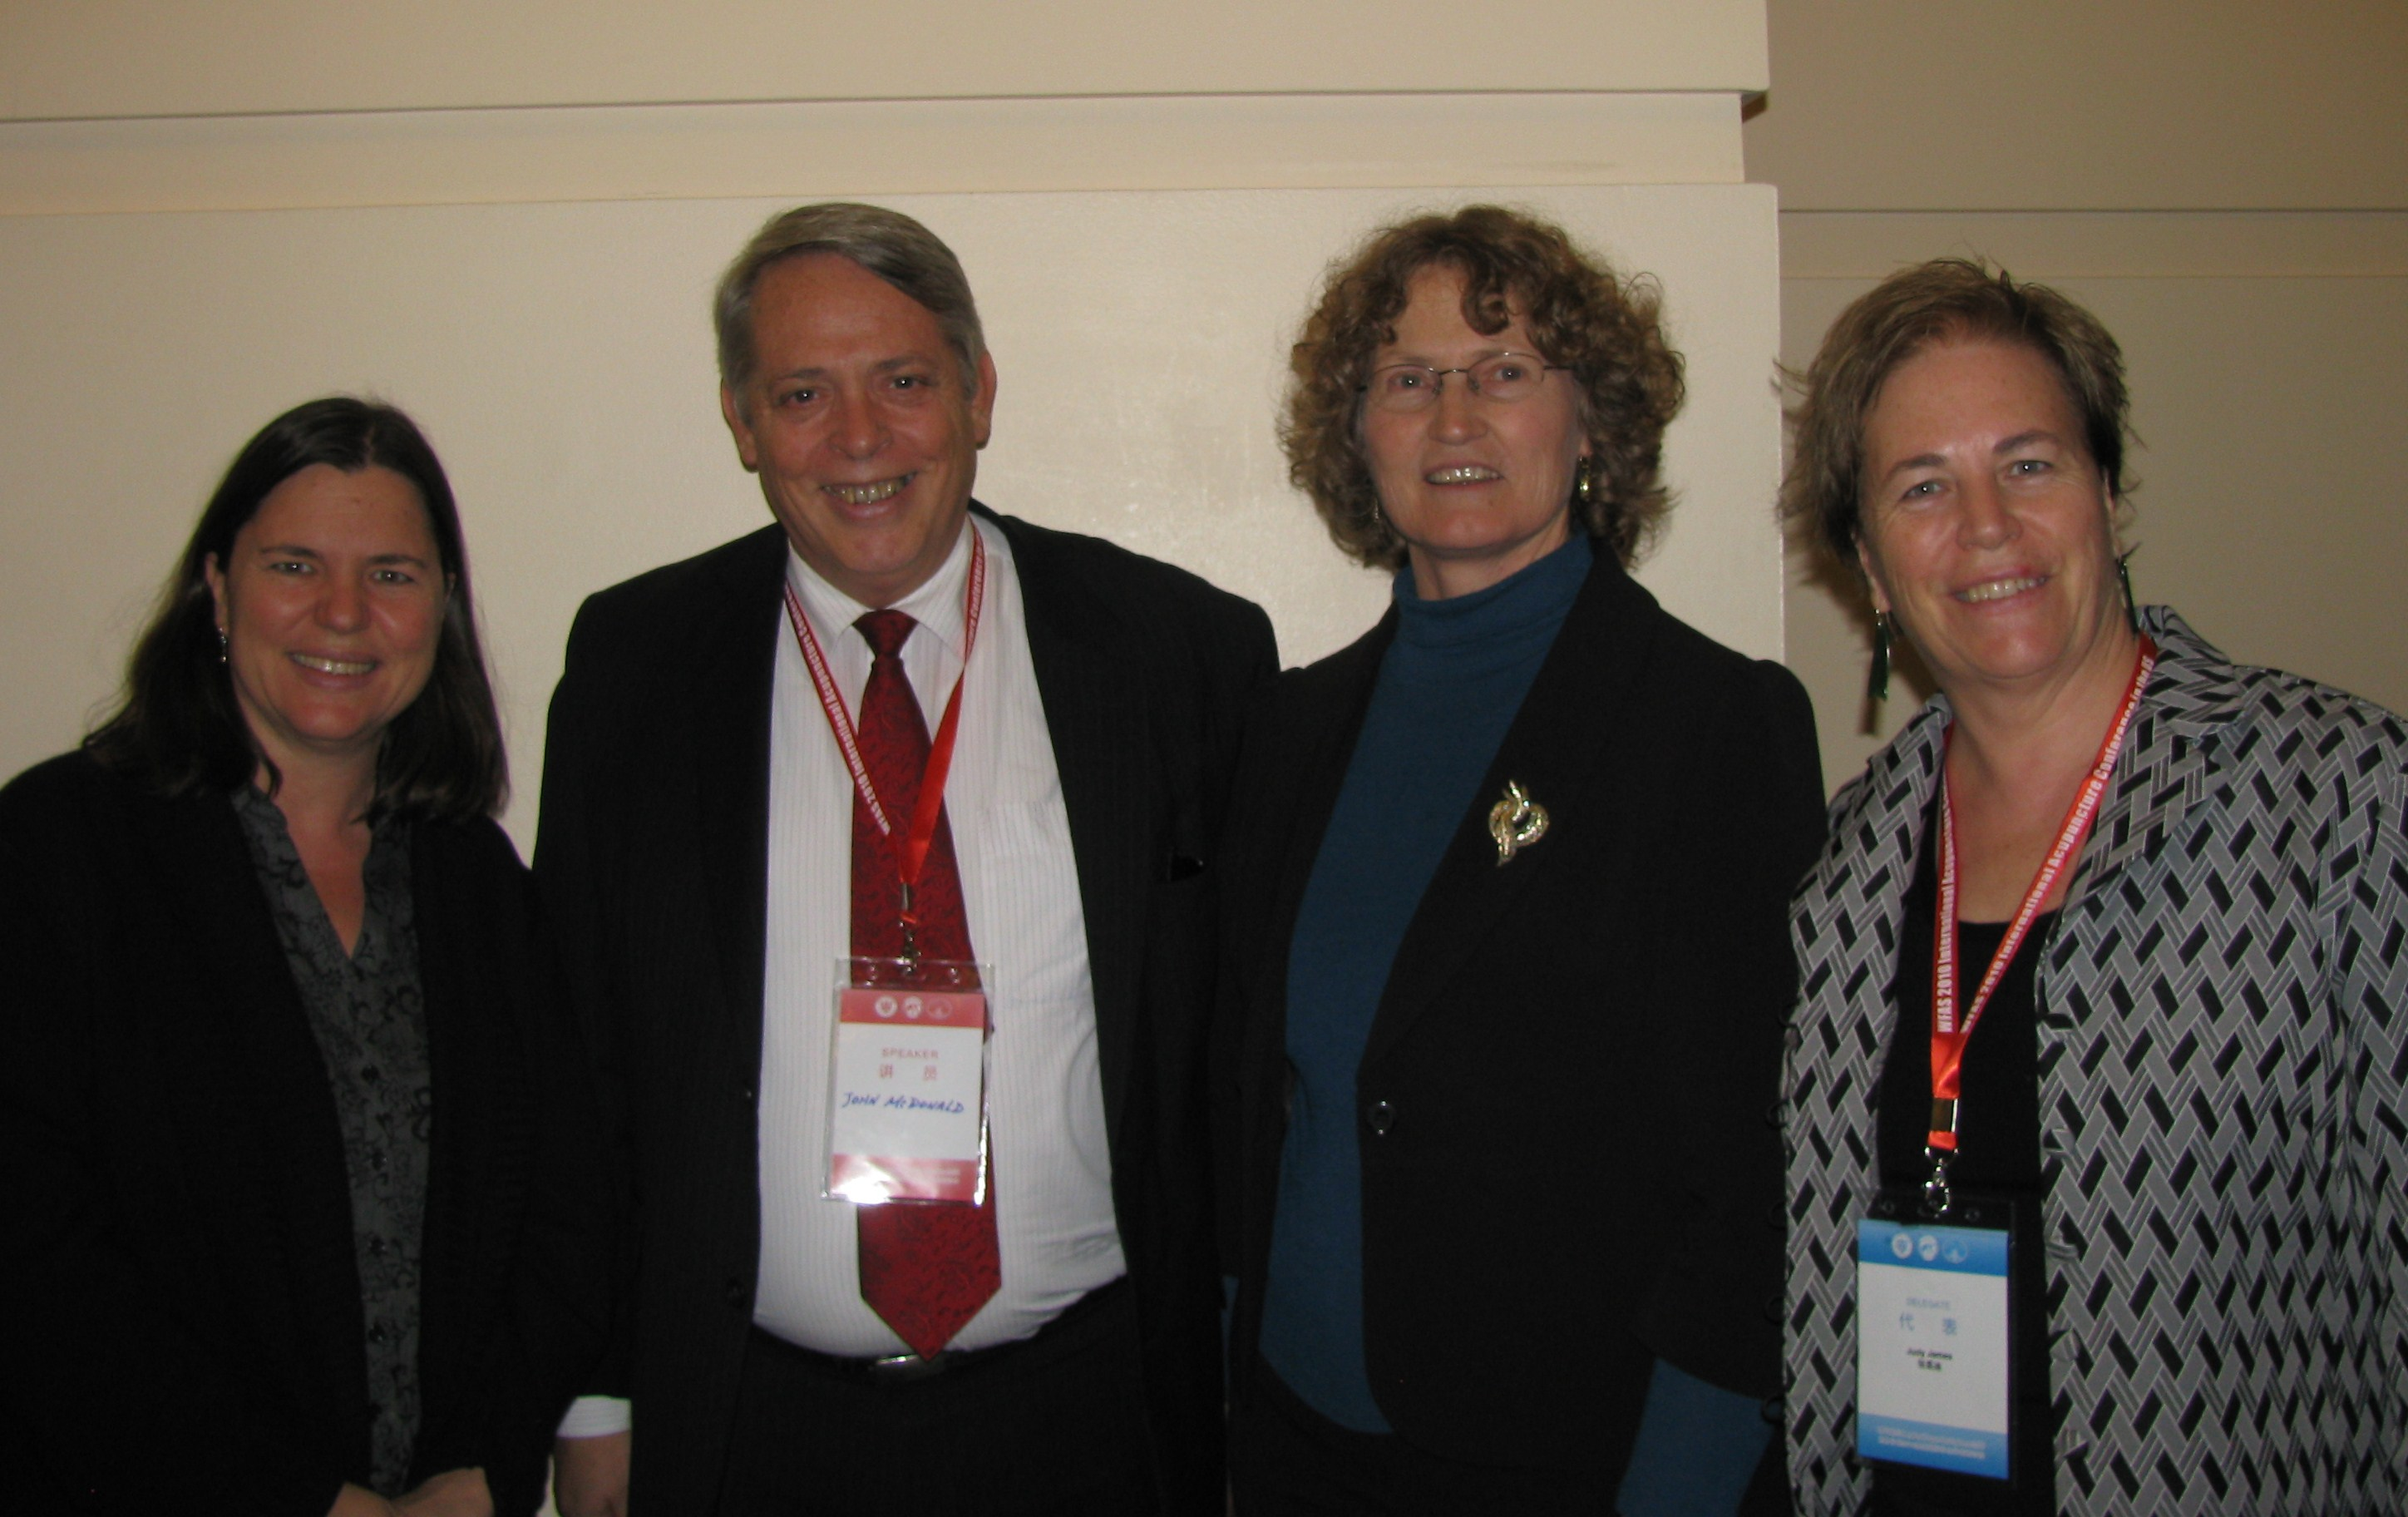 Brenda Golianu, John McDonald, Paddy McBride and Judy James at San Francisco WFAS 2010